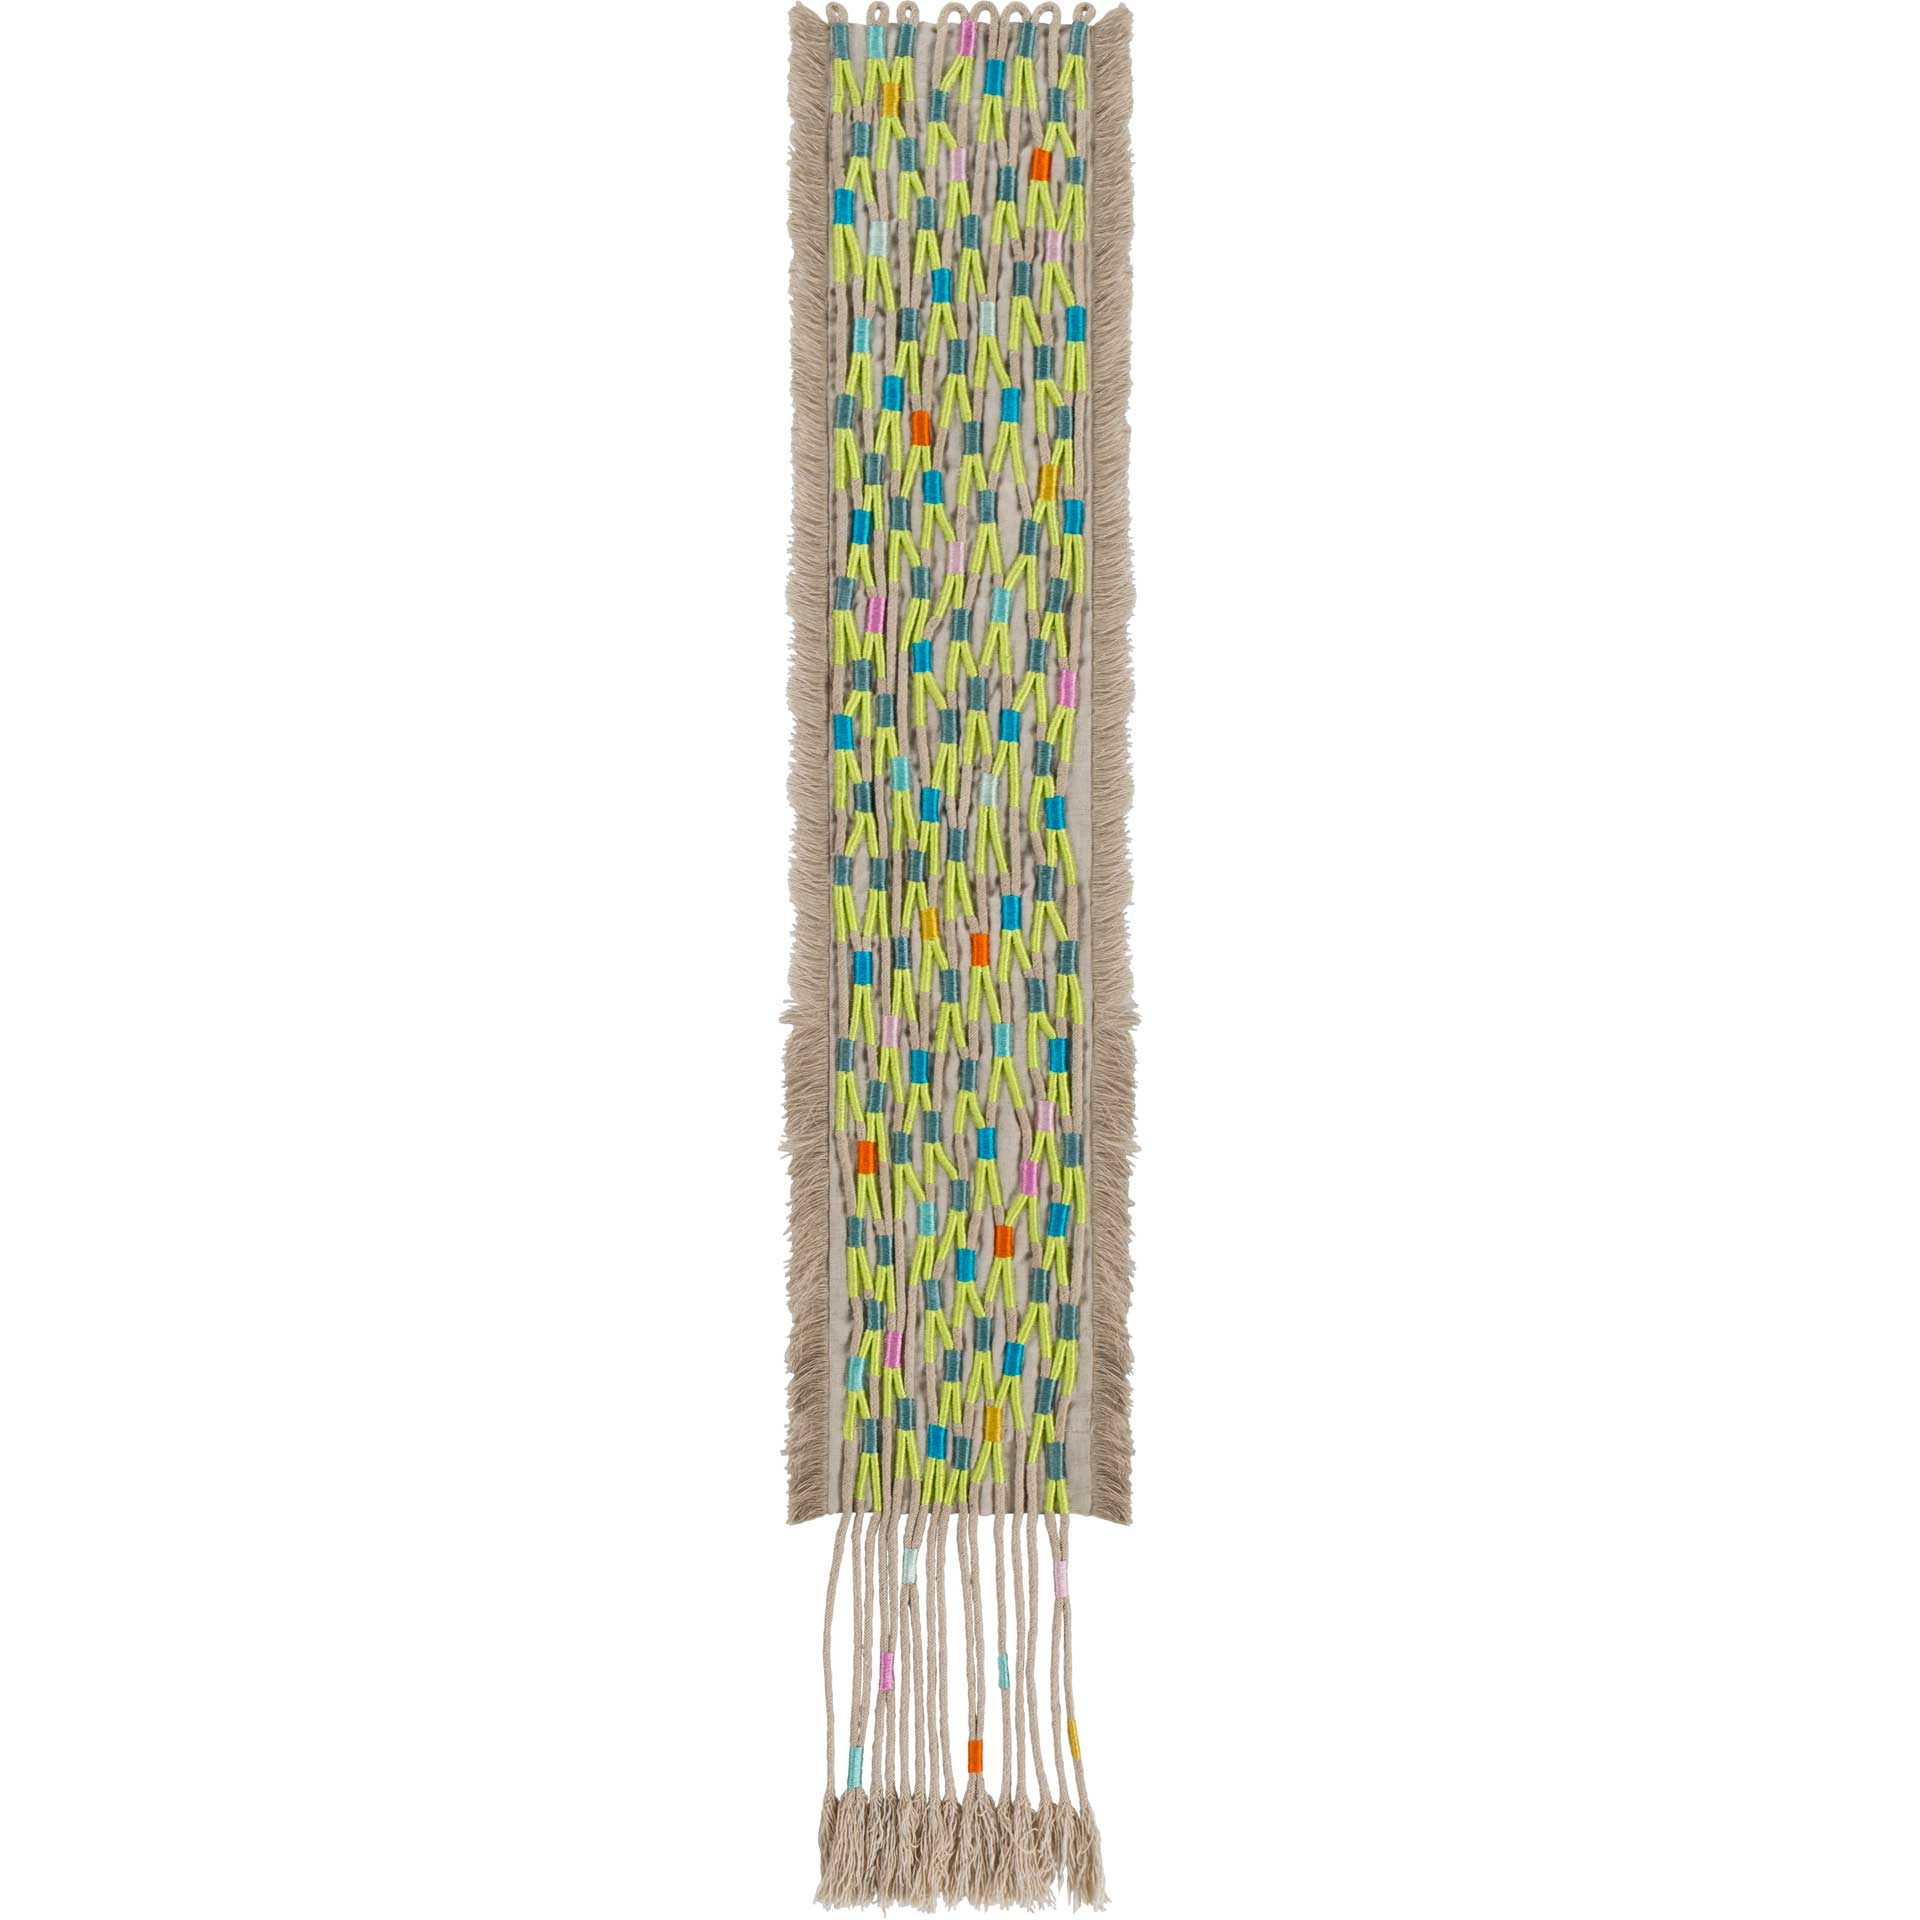 Ashley Wall Hanging Beige/Lime/Teal